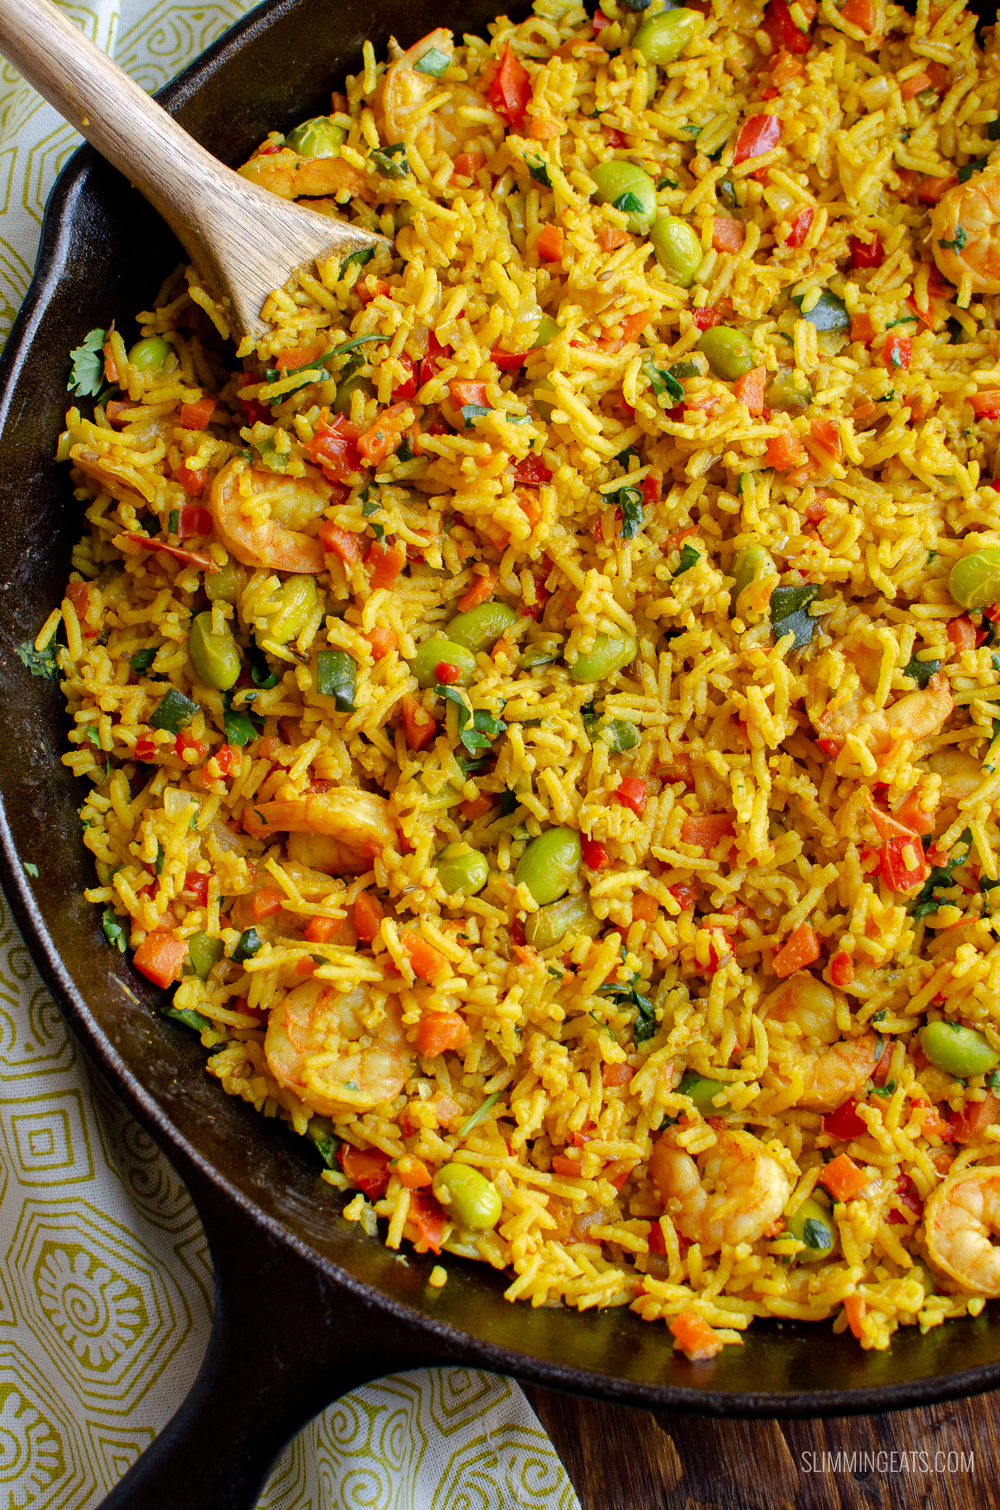 prawn and vegetable pilaf in cast iron skillet with wooden spoon